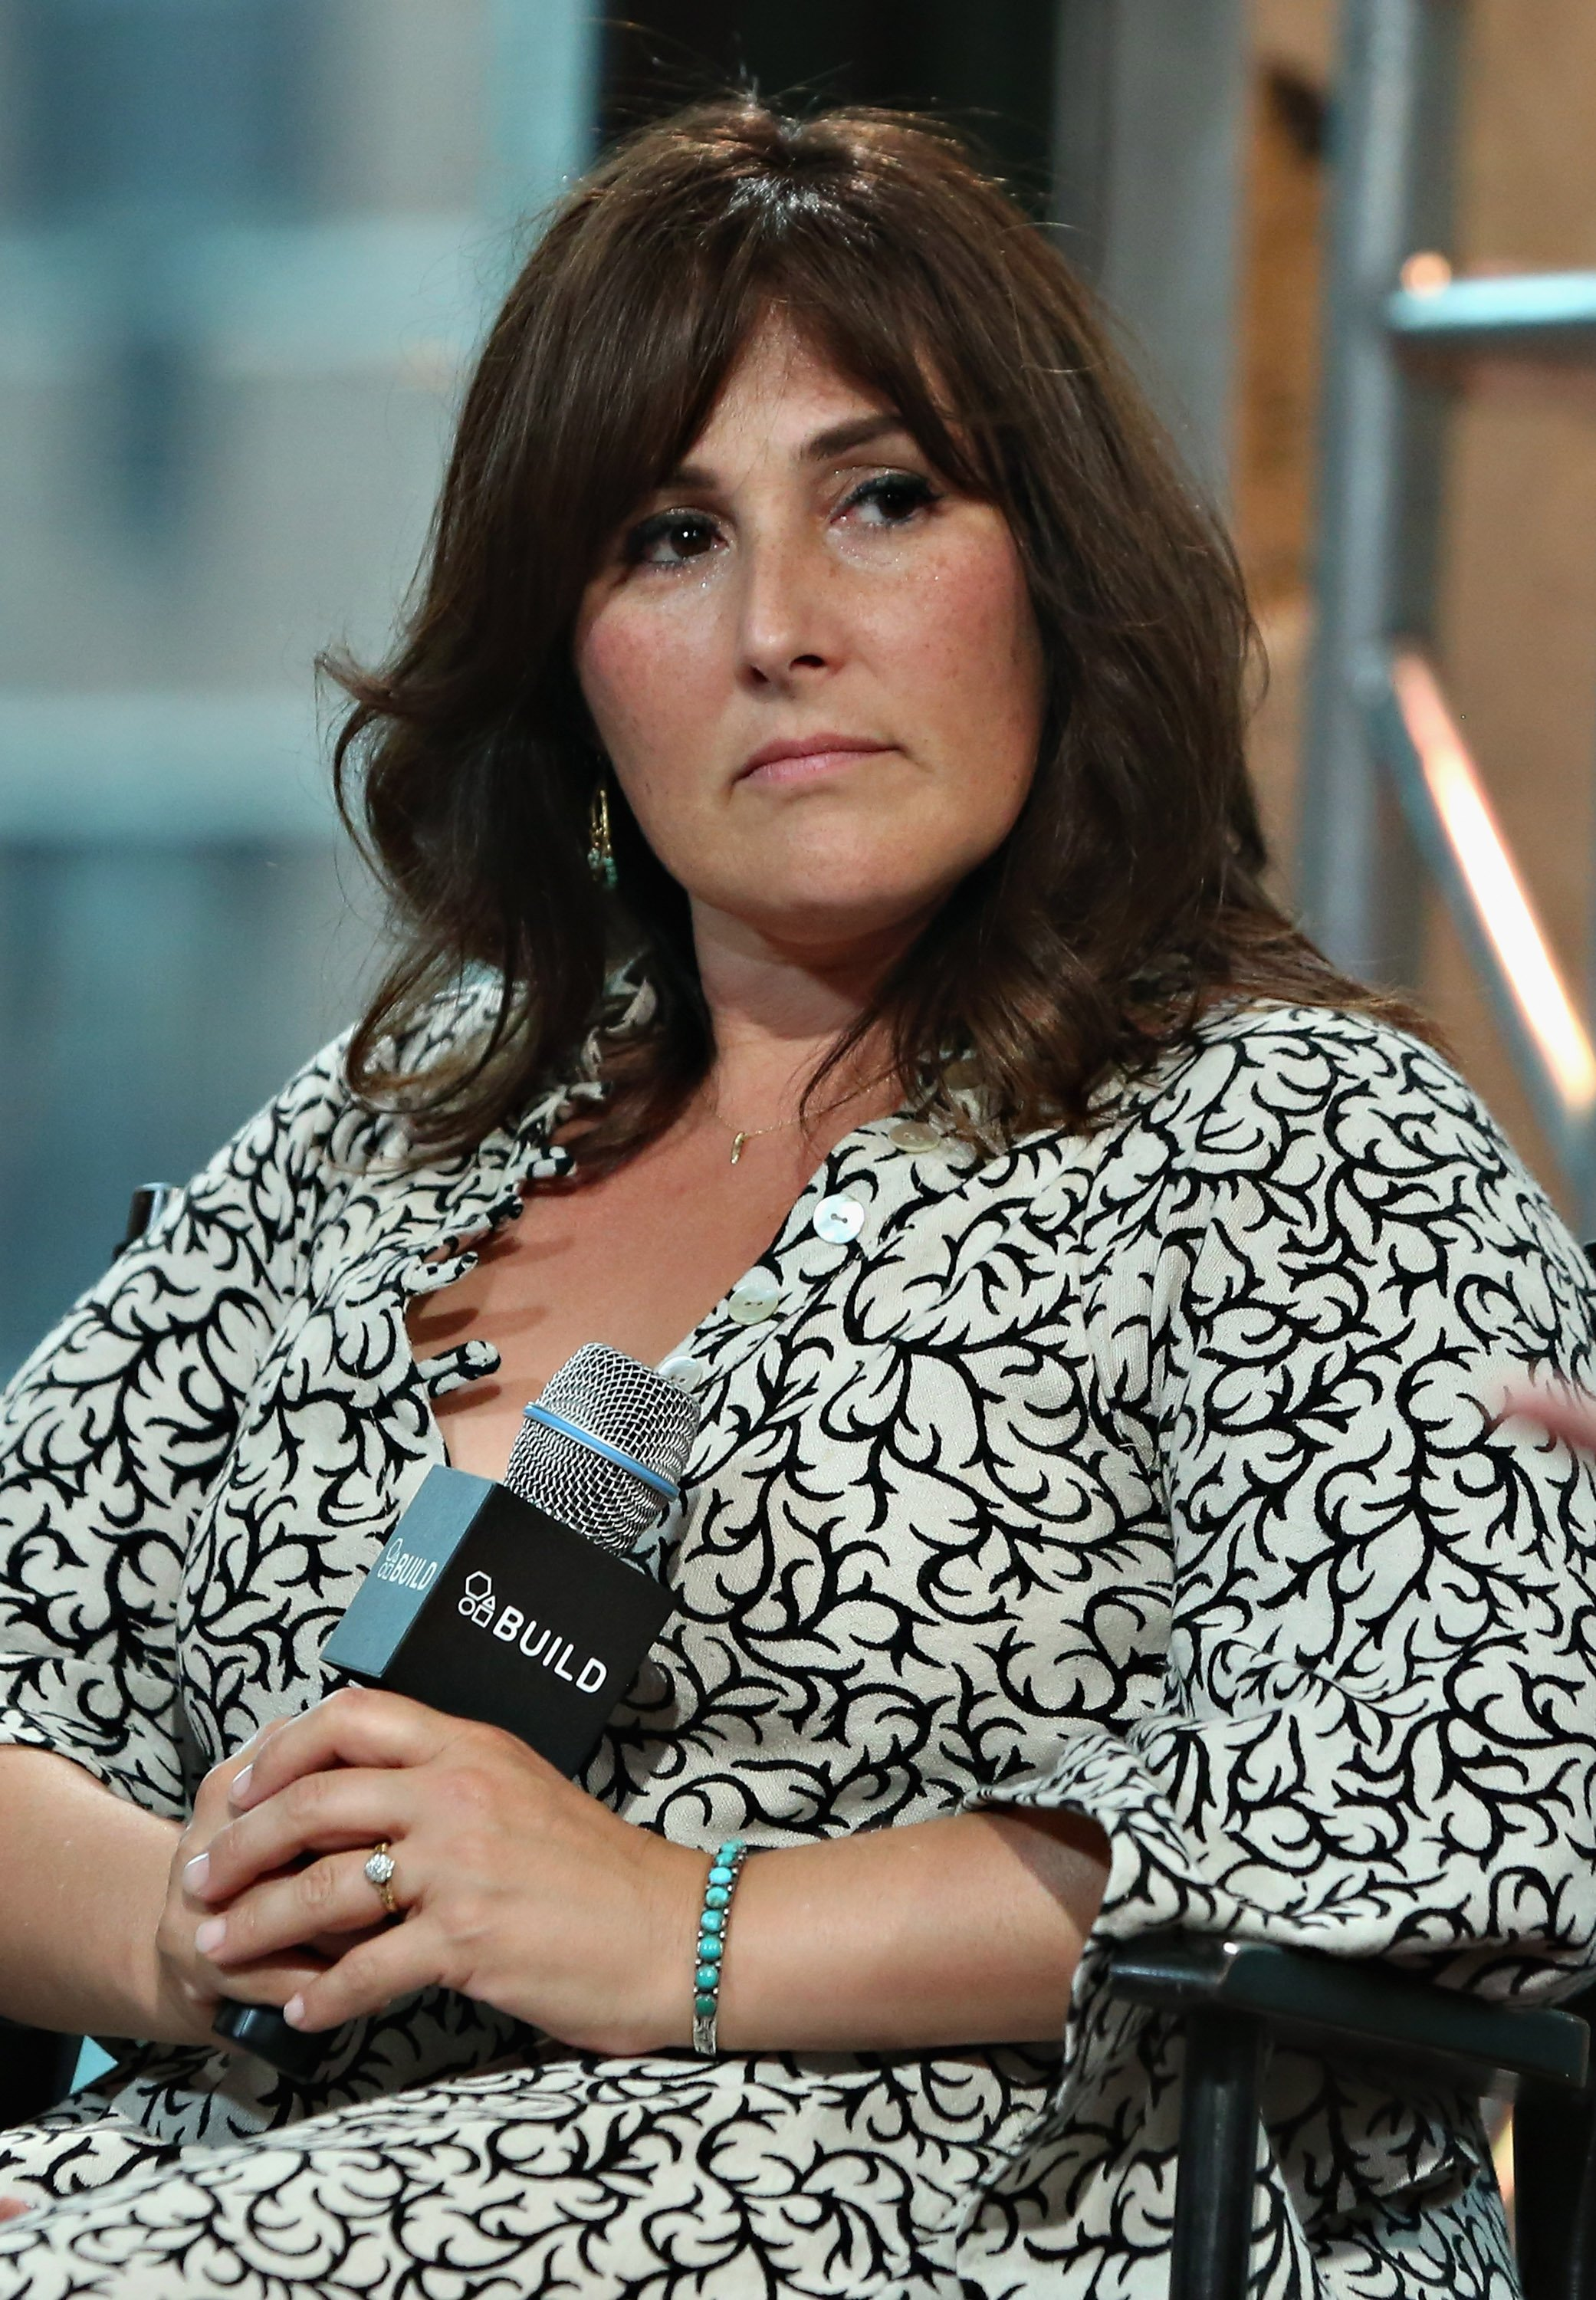 Ricki Lake on August 10, 2015 in New York City | Photo: Getty Images